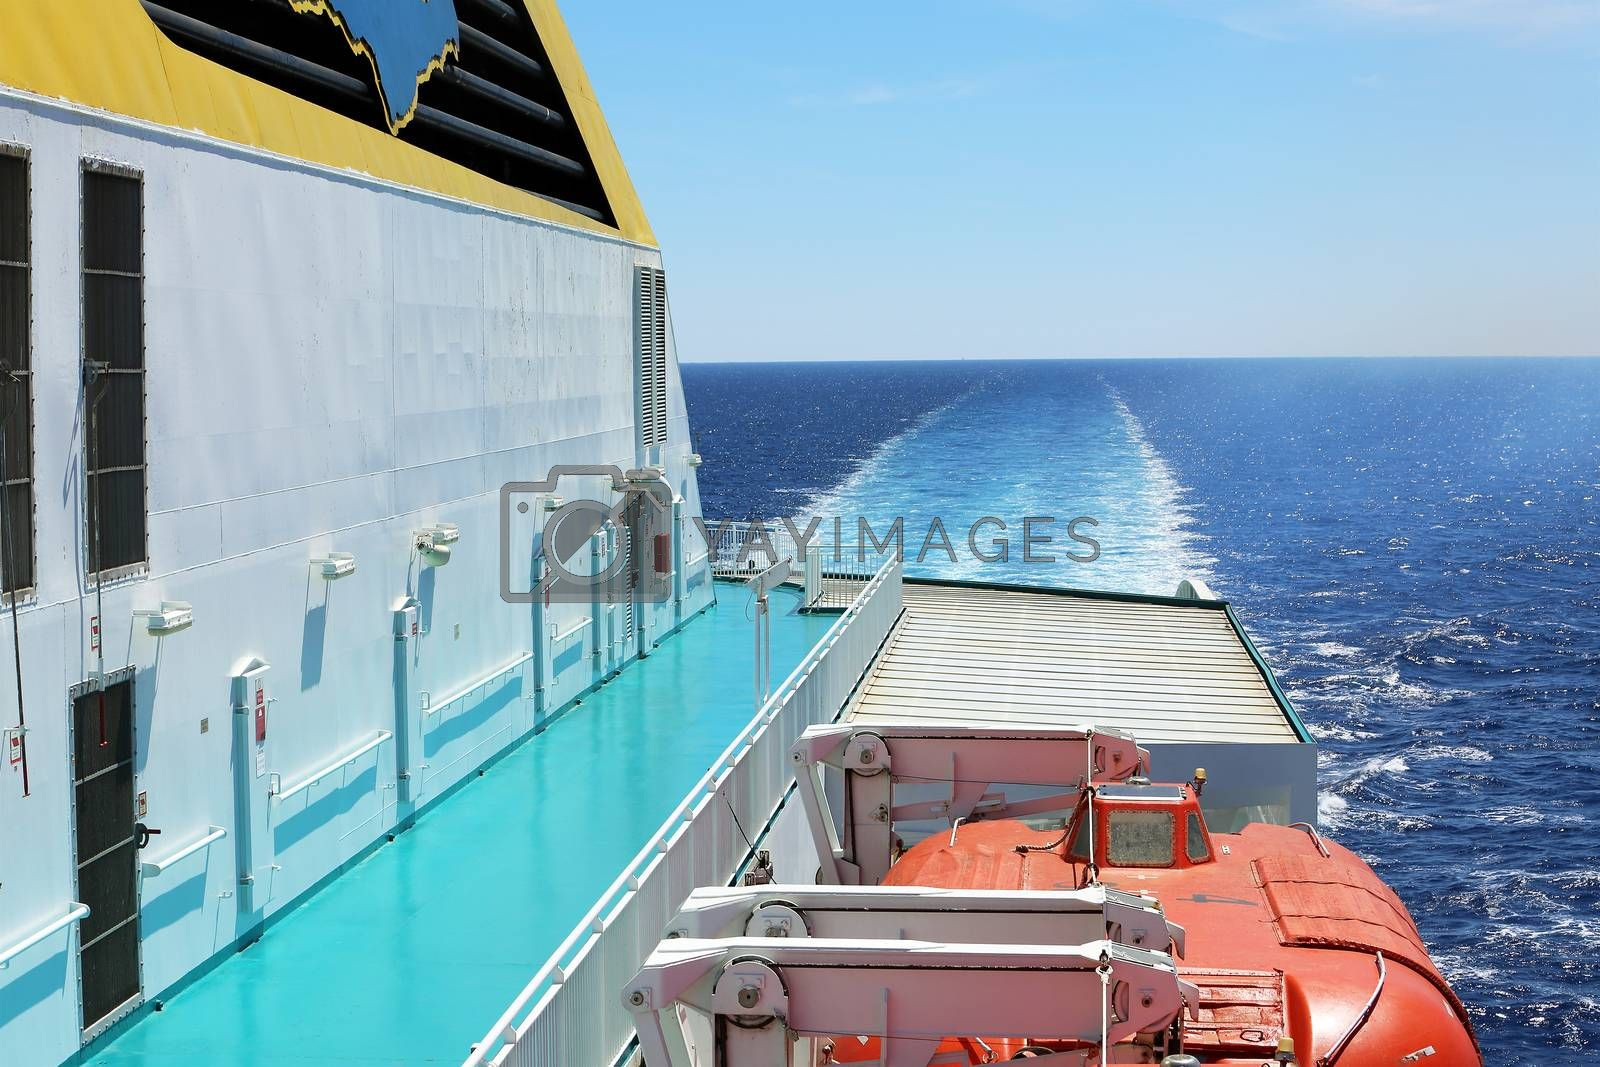 Igoumenitsa, Greece - August 3, 2016: Ferry Deck View With Life Boats of a Hellenic Spirit Ferry, Anek Company. Anek Lines Is The Largest Passenger Shipping Company In Greece